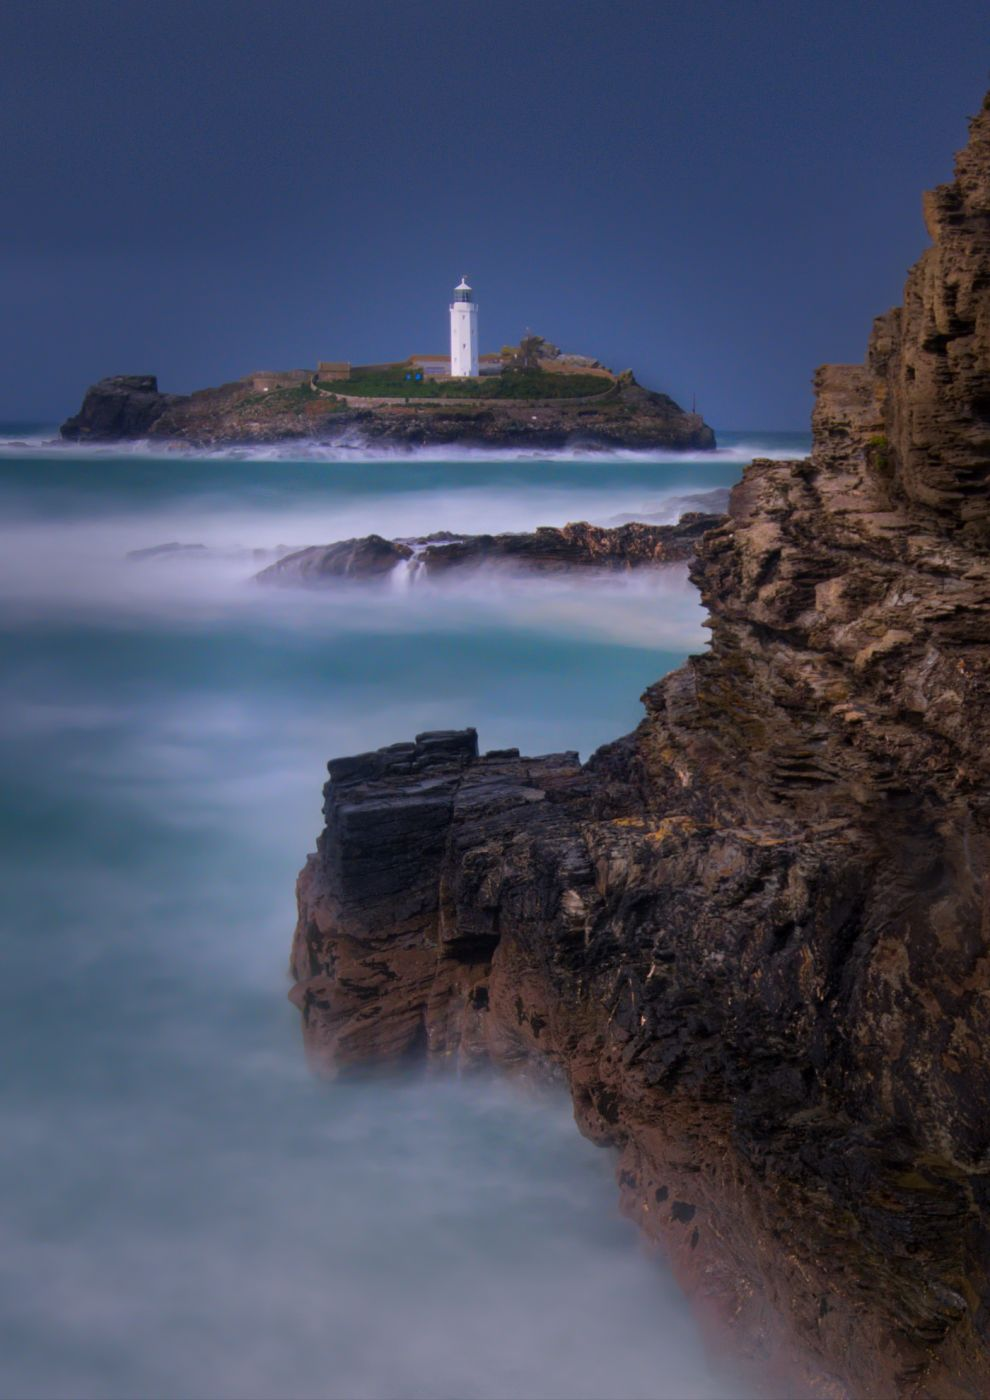 Godrevy Lighthouse, Cornwall, United Kingdom